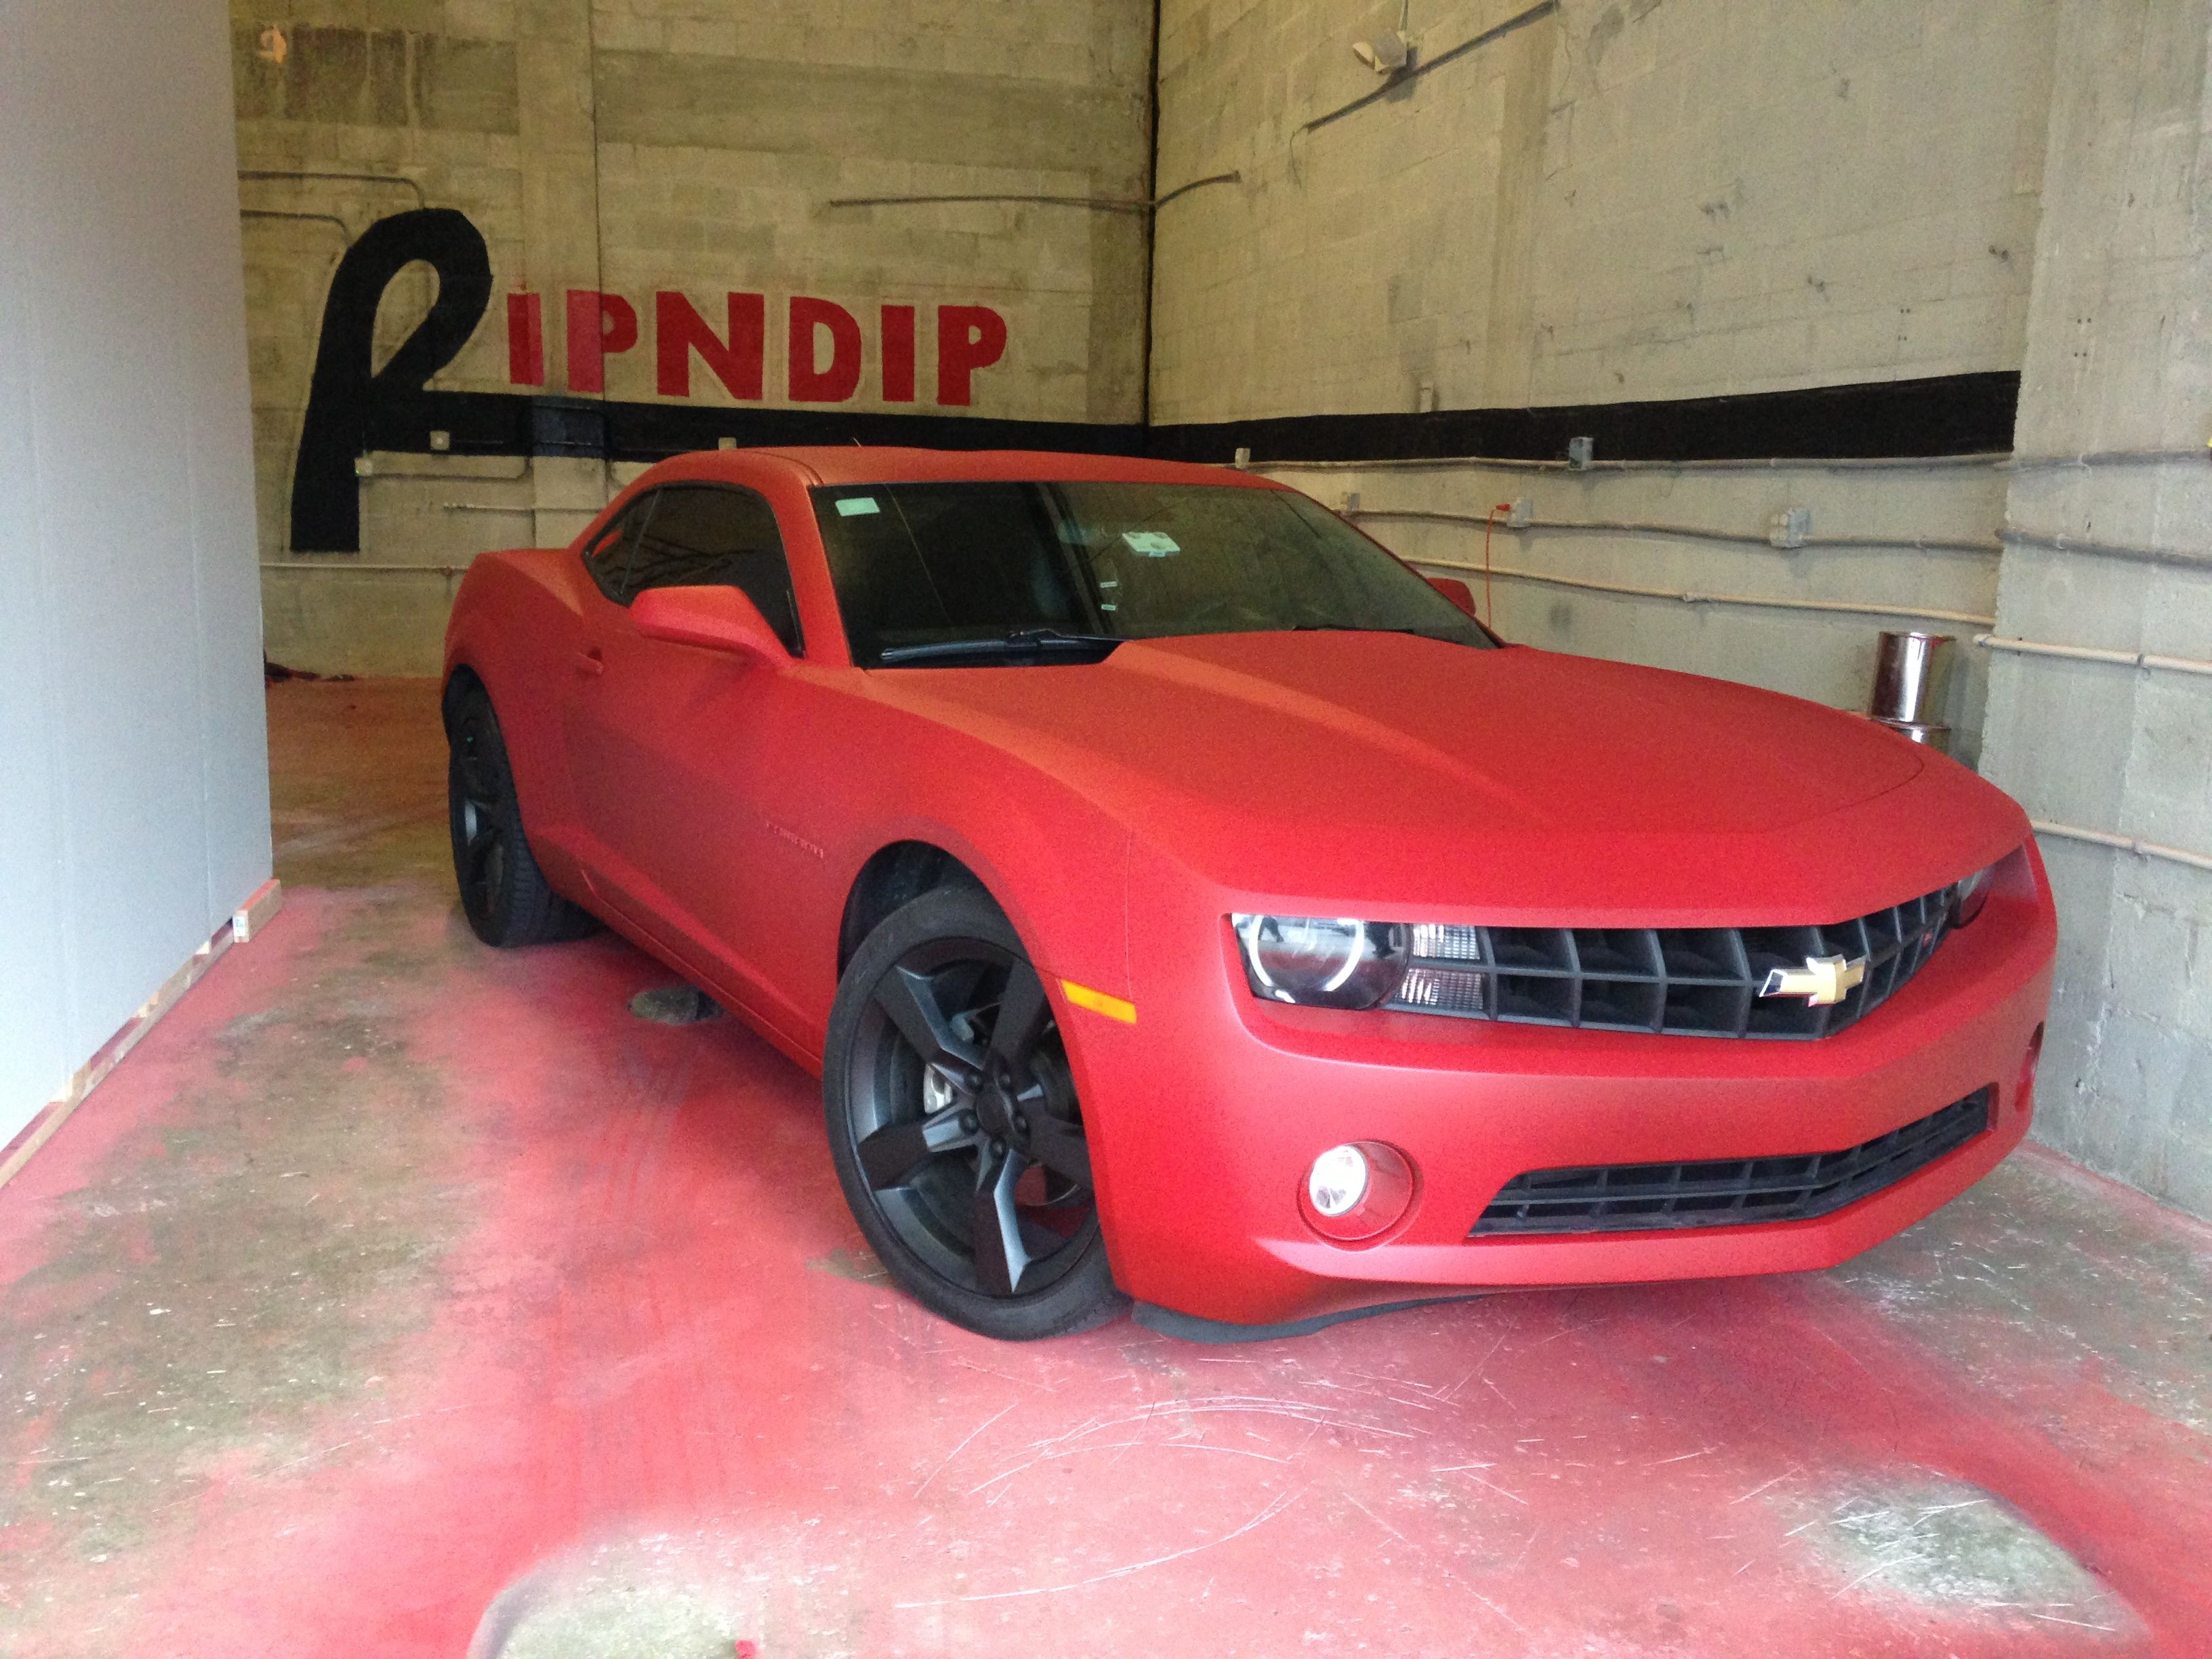 Plasti Dip On Cars! Newest Way To Paint/wrap Your Car In